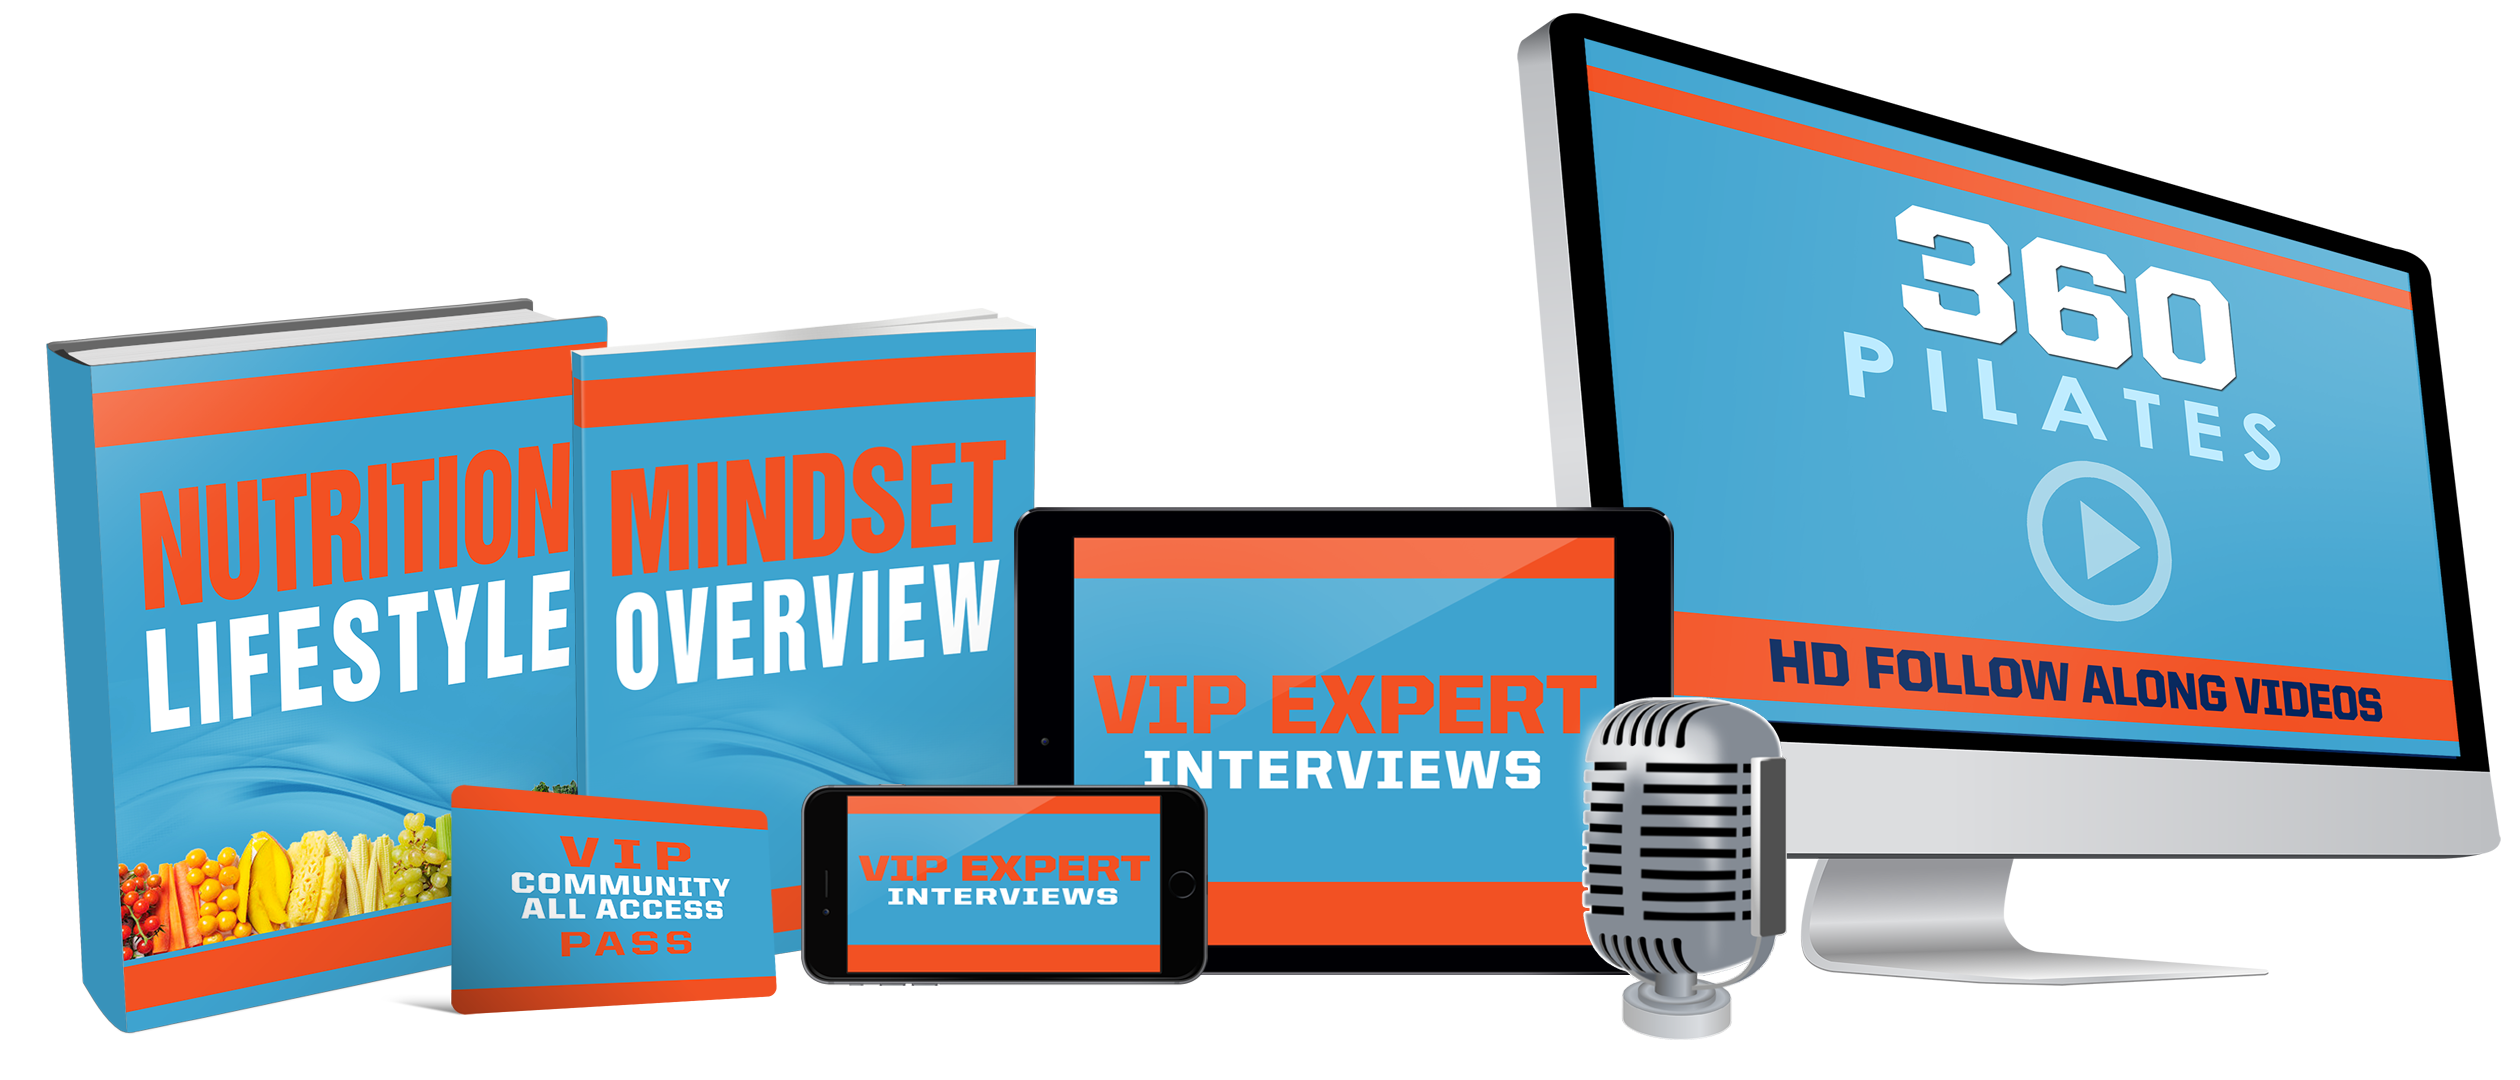 Silvia_VIPExpertInterviews_bundle-02B